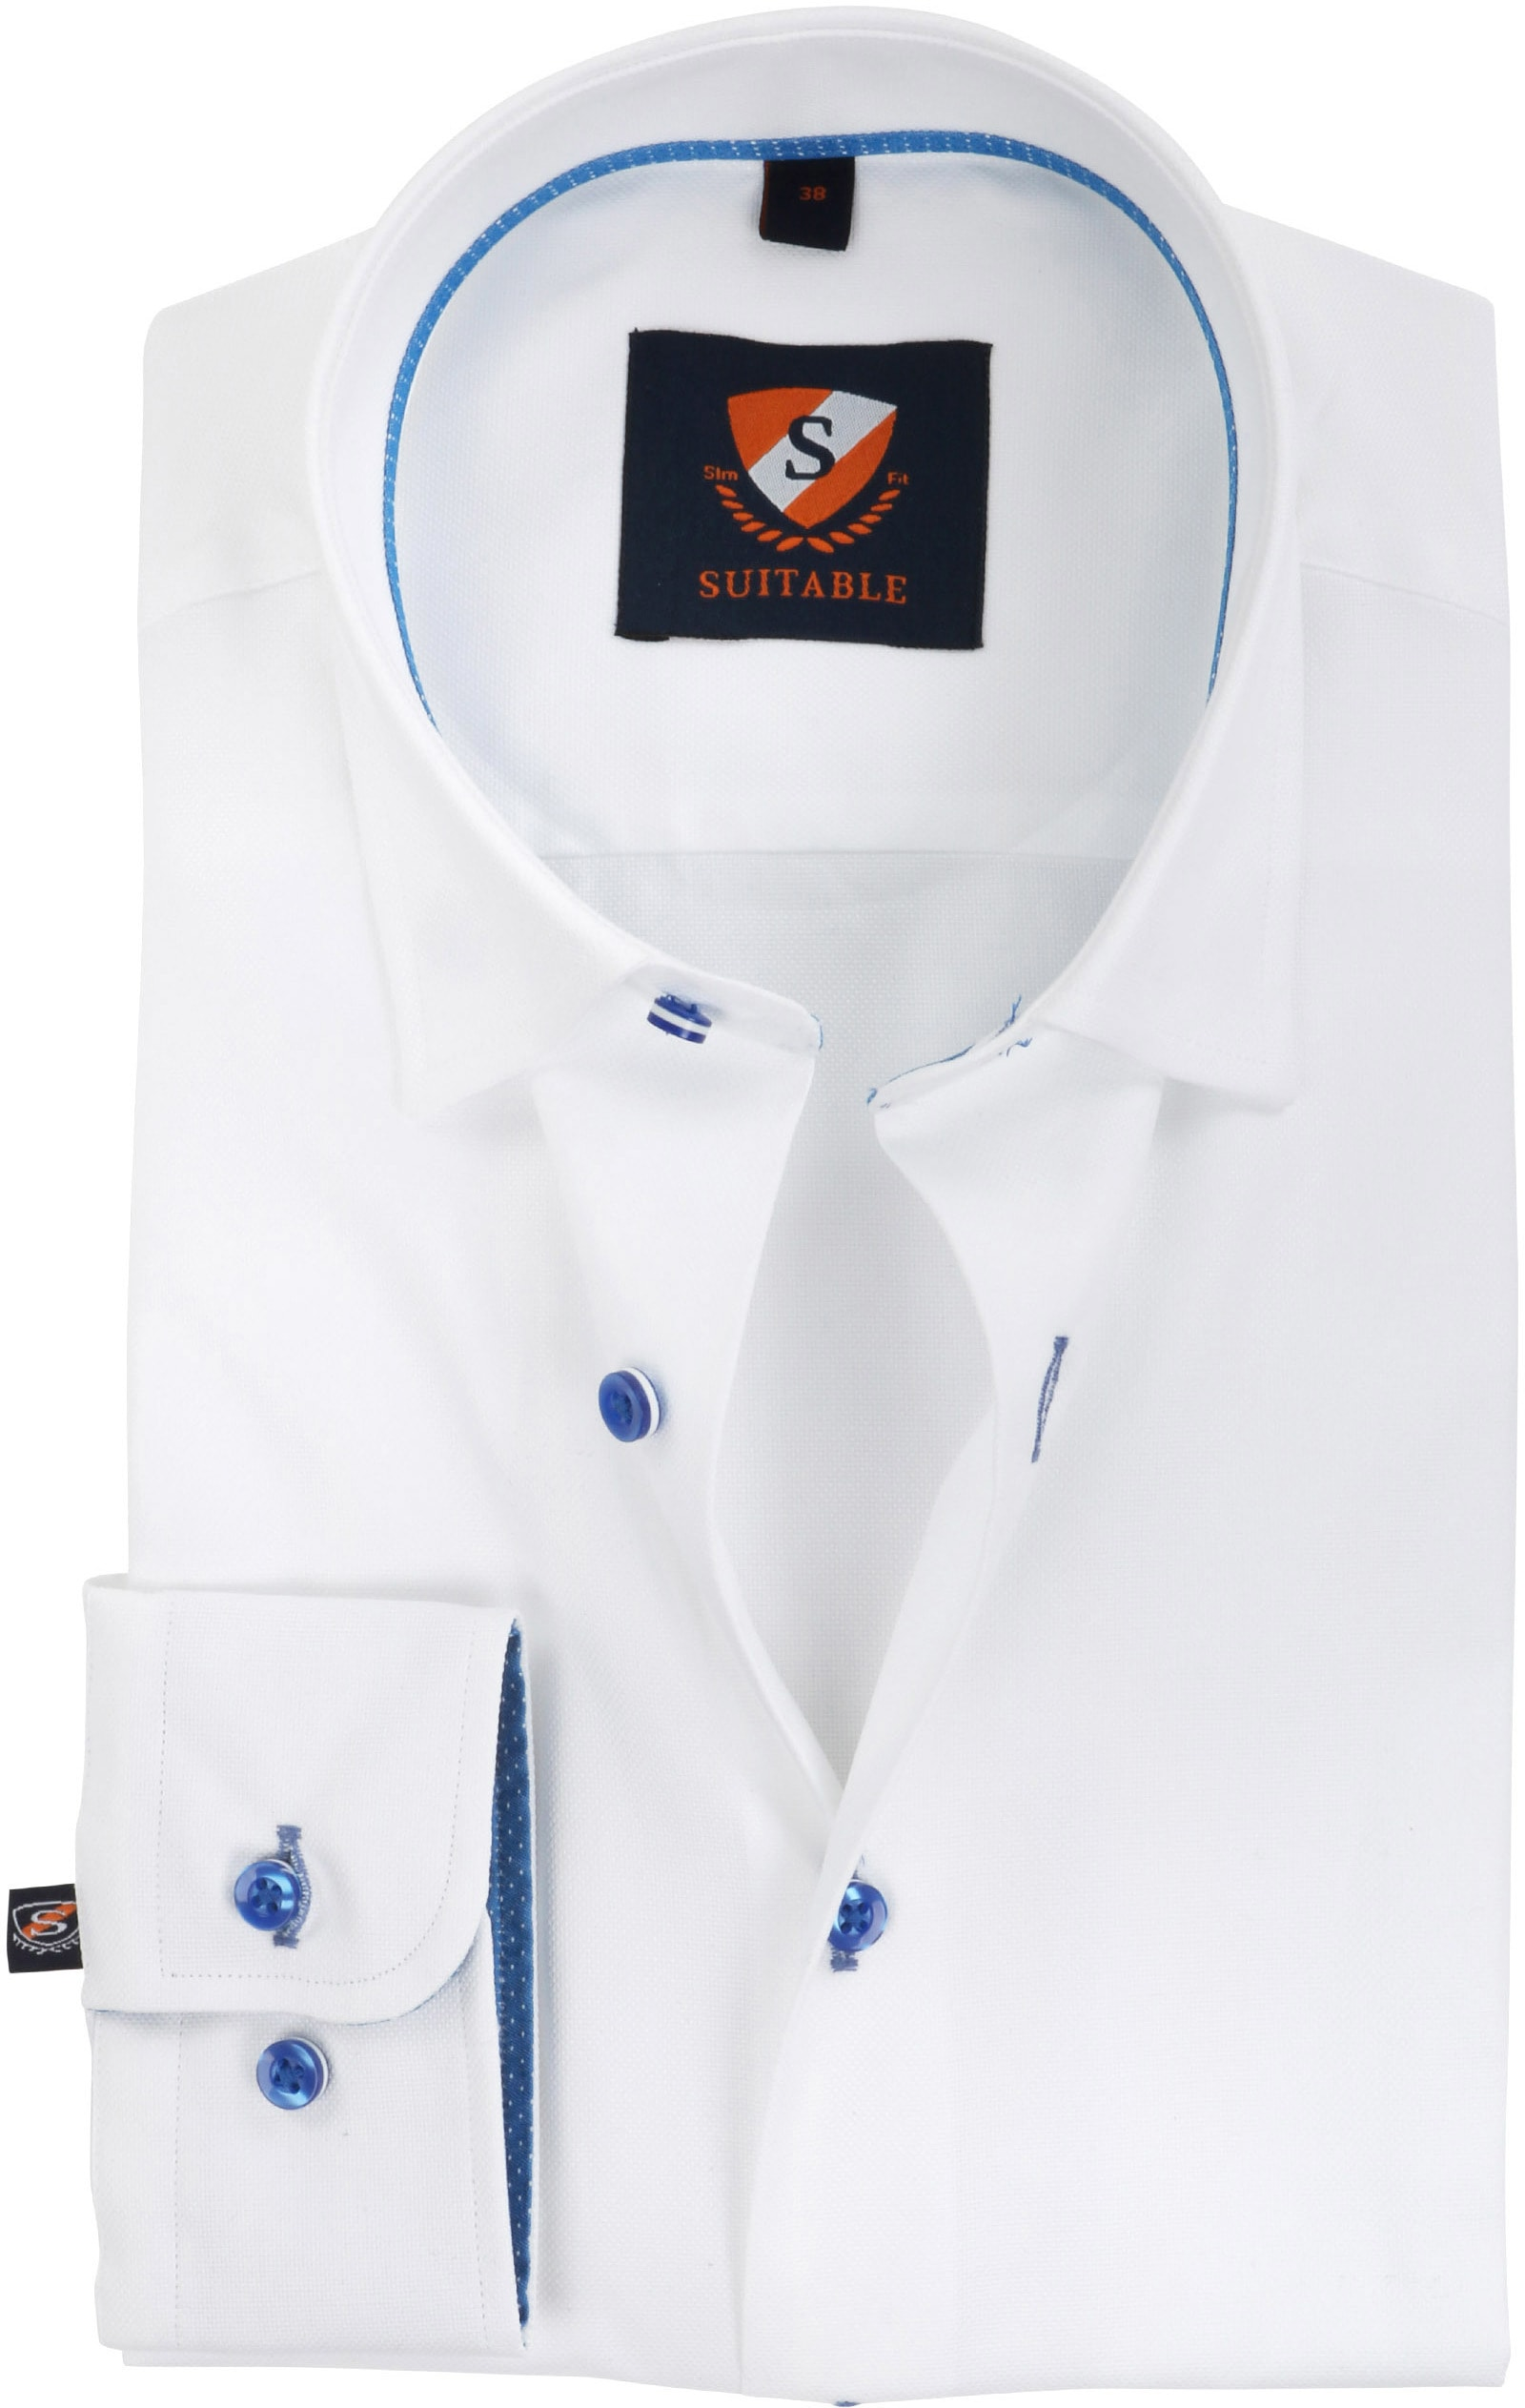 Suitable Shirt Oxford White SF foto 0